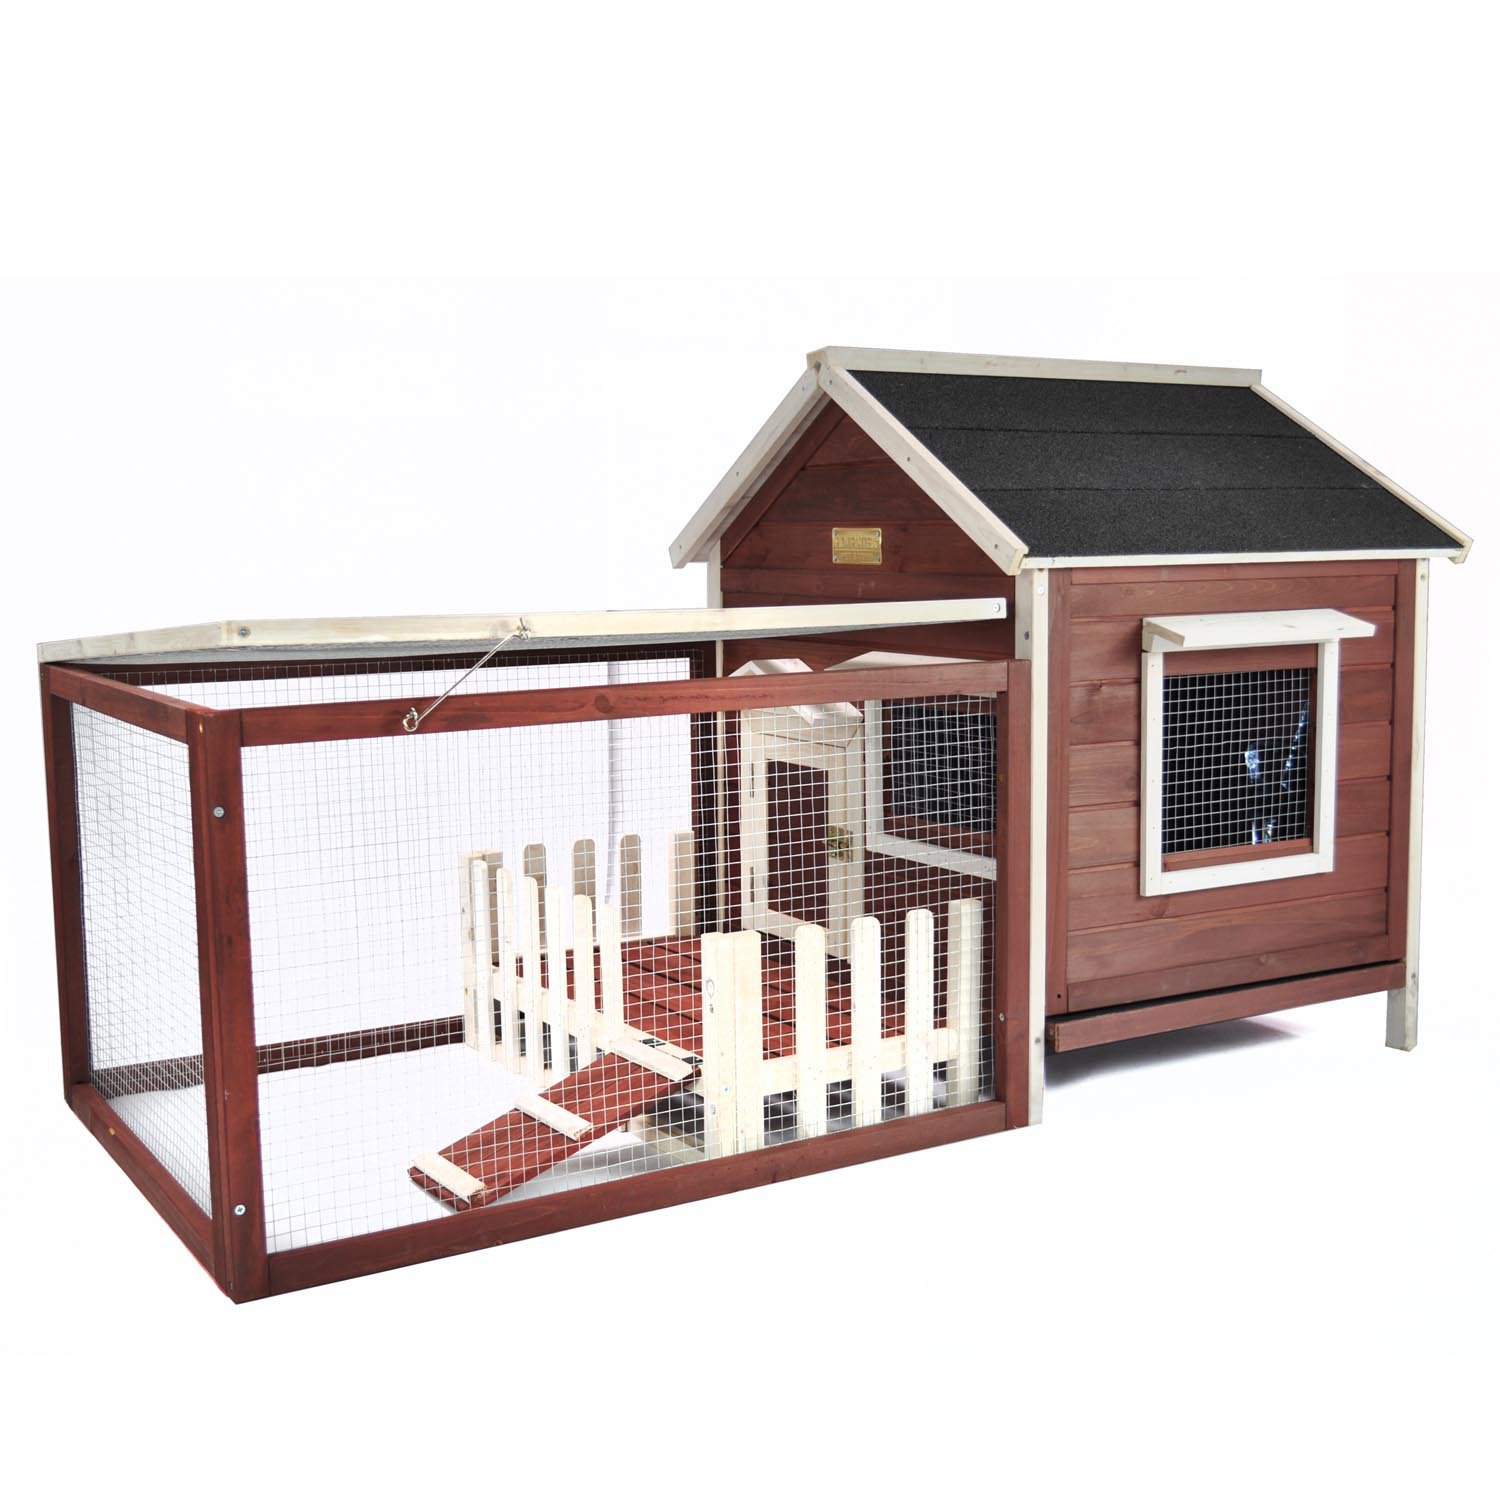 Advantek The White Picket Fence Rabbit Hutch in Auburn & White | Petco